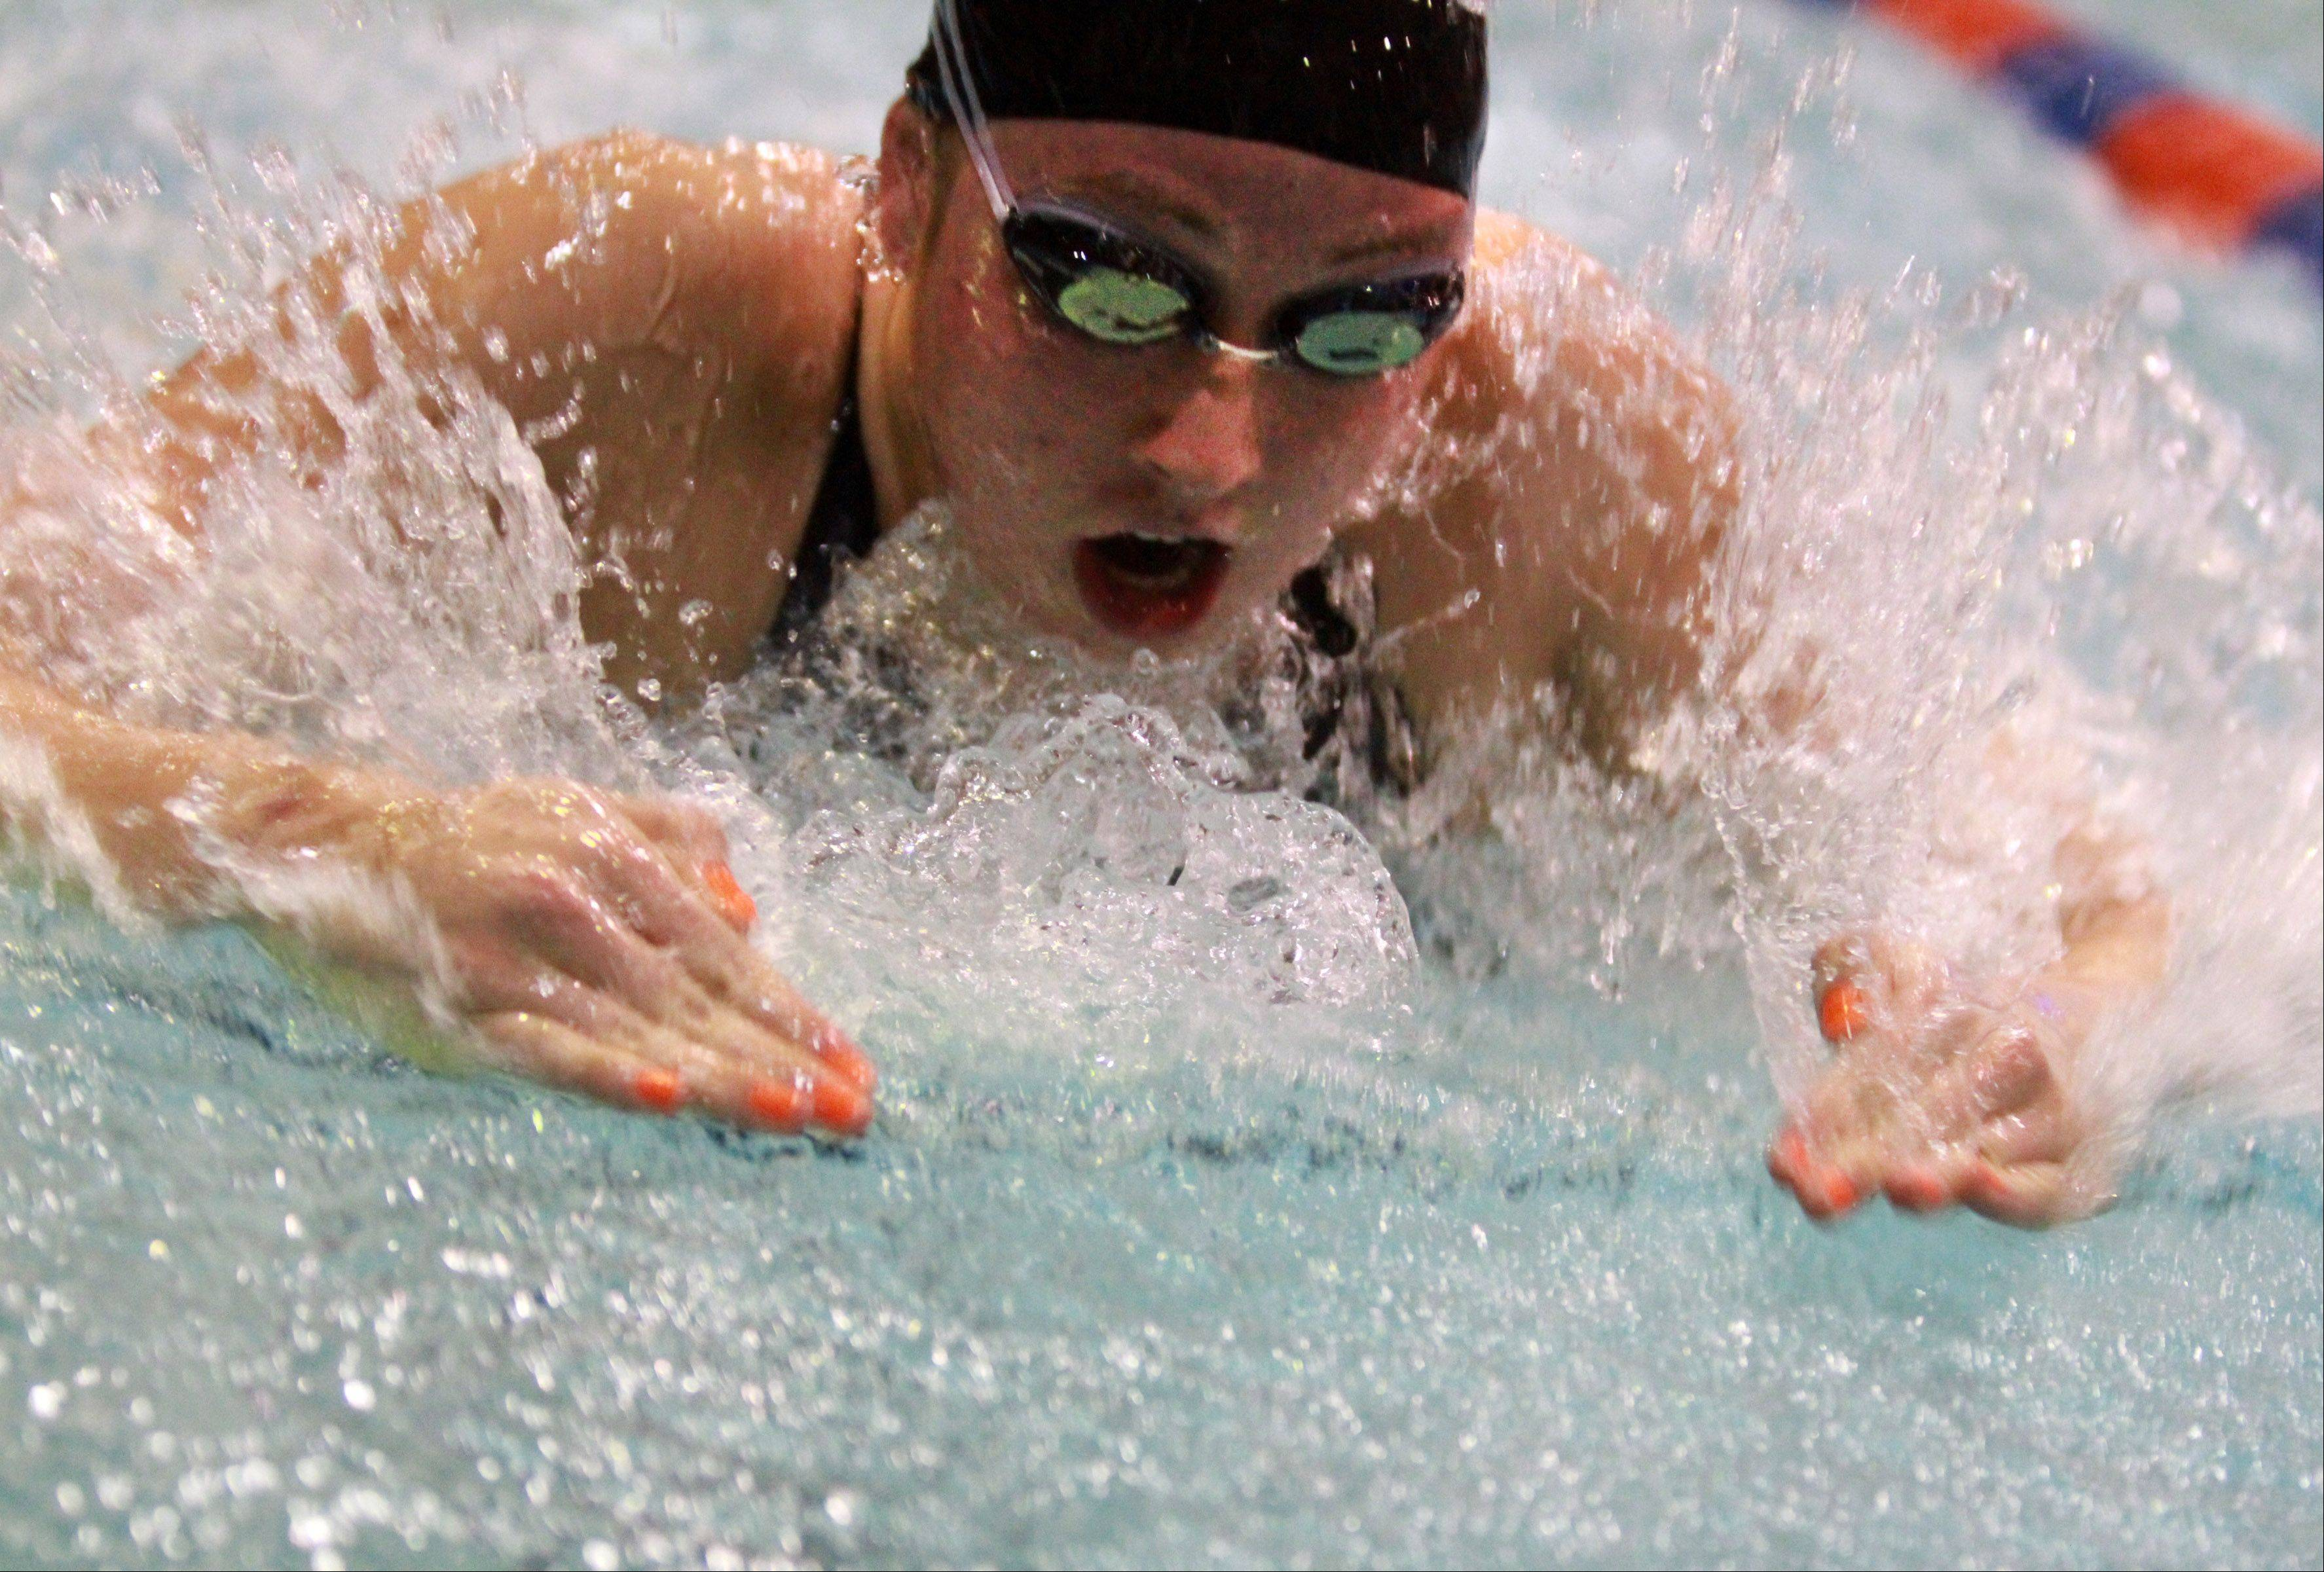 St. Charles East Nicole Chapko placed sixth in 100-yard breaststroke at the IHSA state championships in Evanston on Saturday.